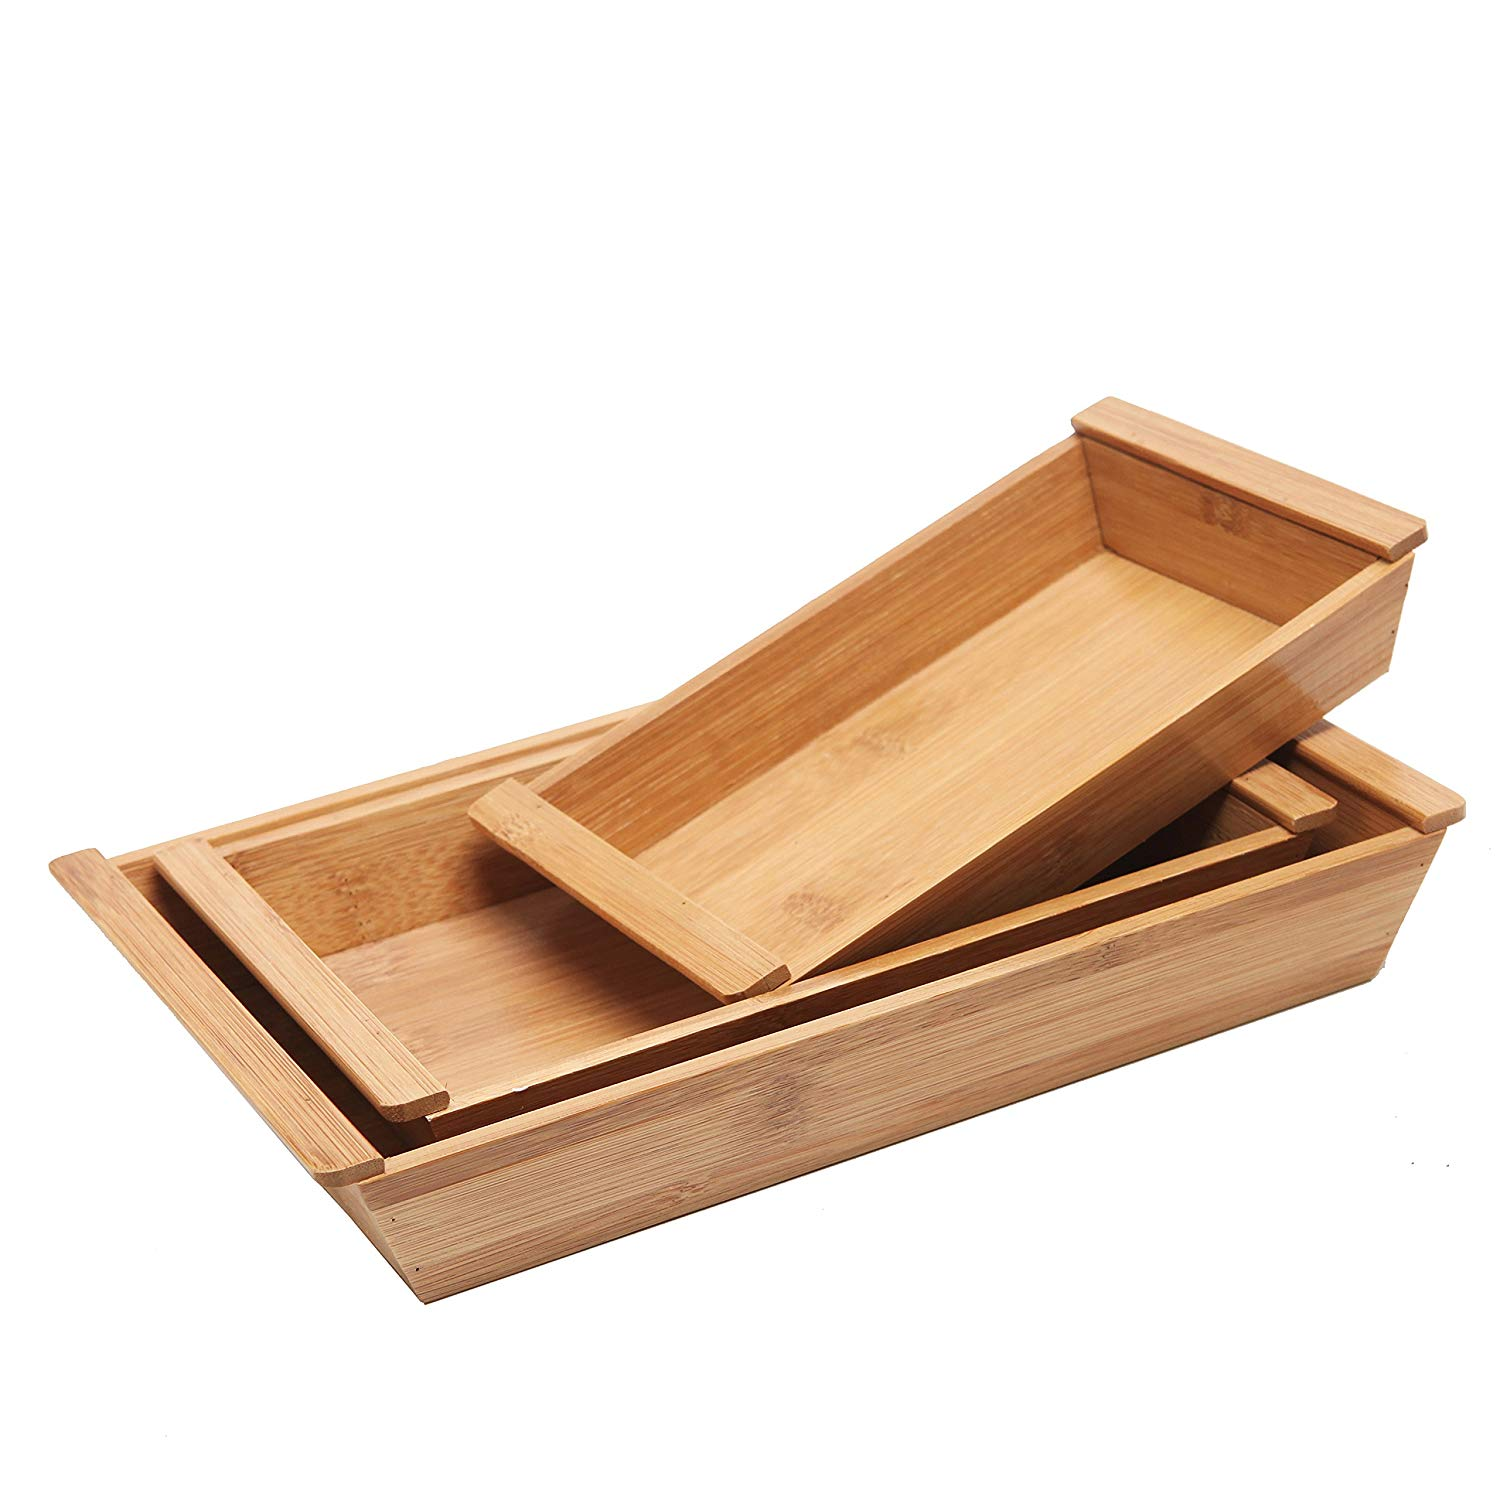 High quality rectangle shape with 3 pieces cheap bamboo designer food serving trays